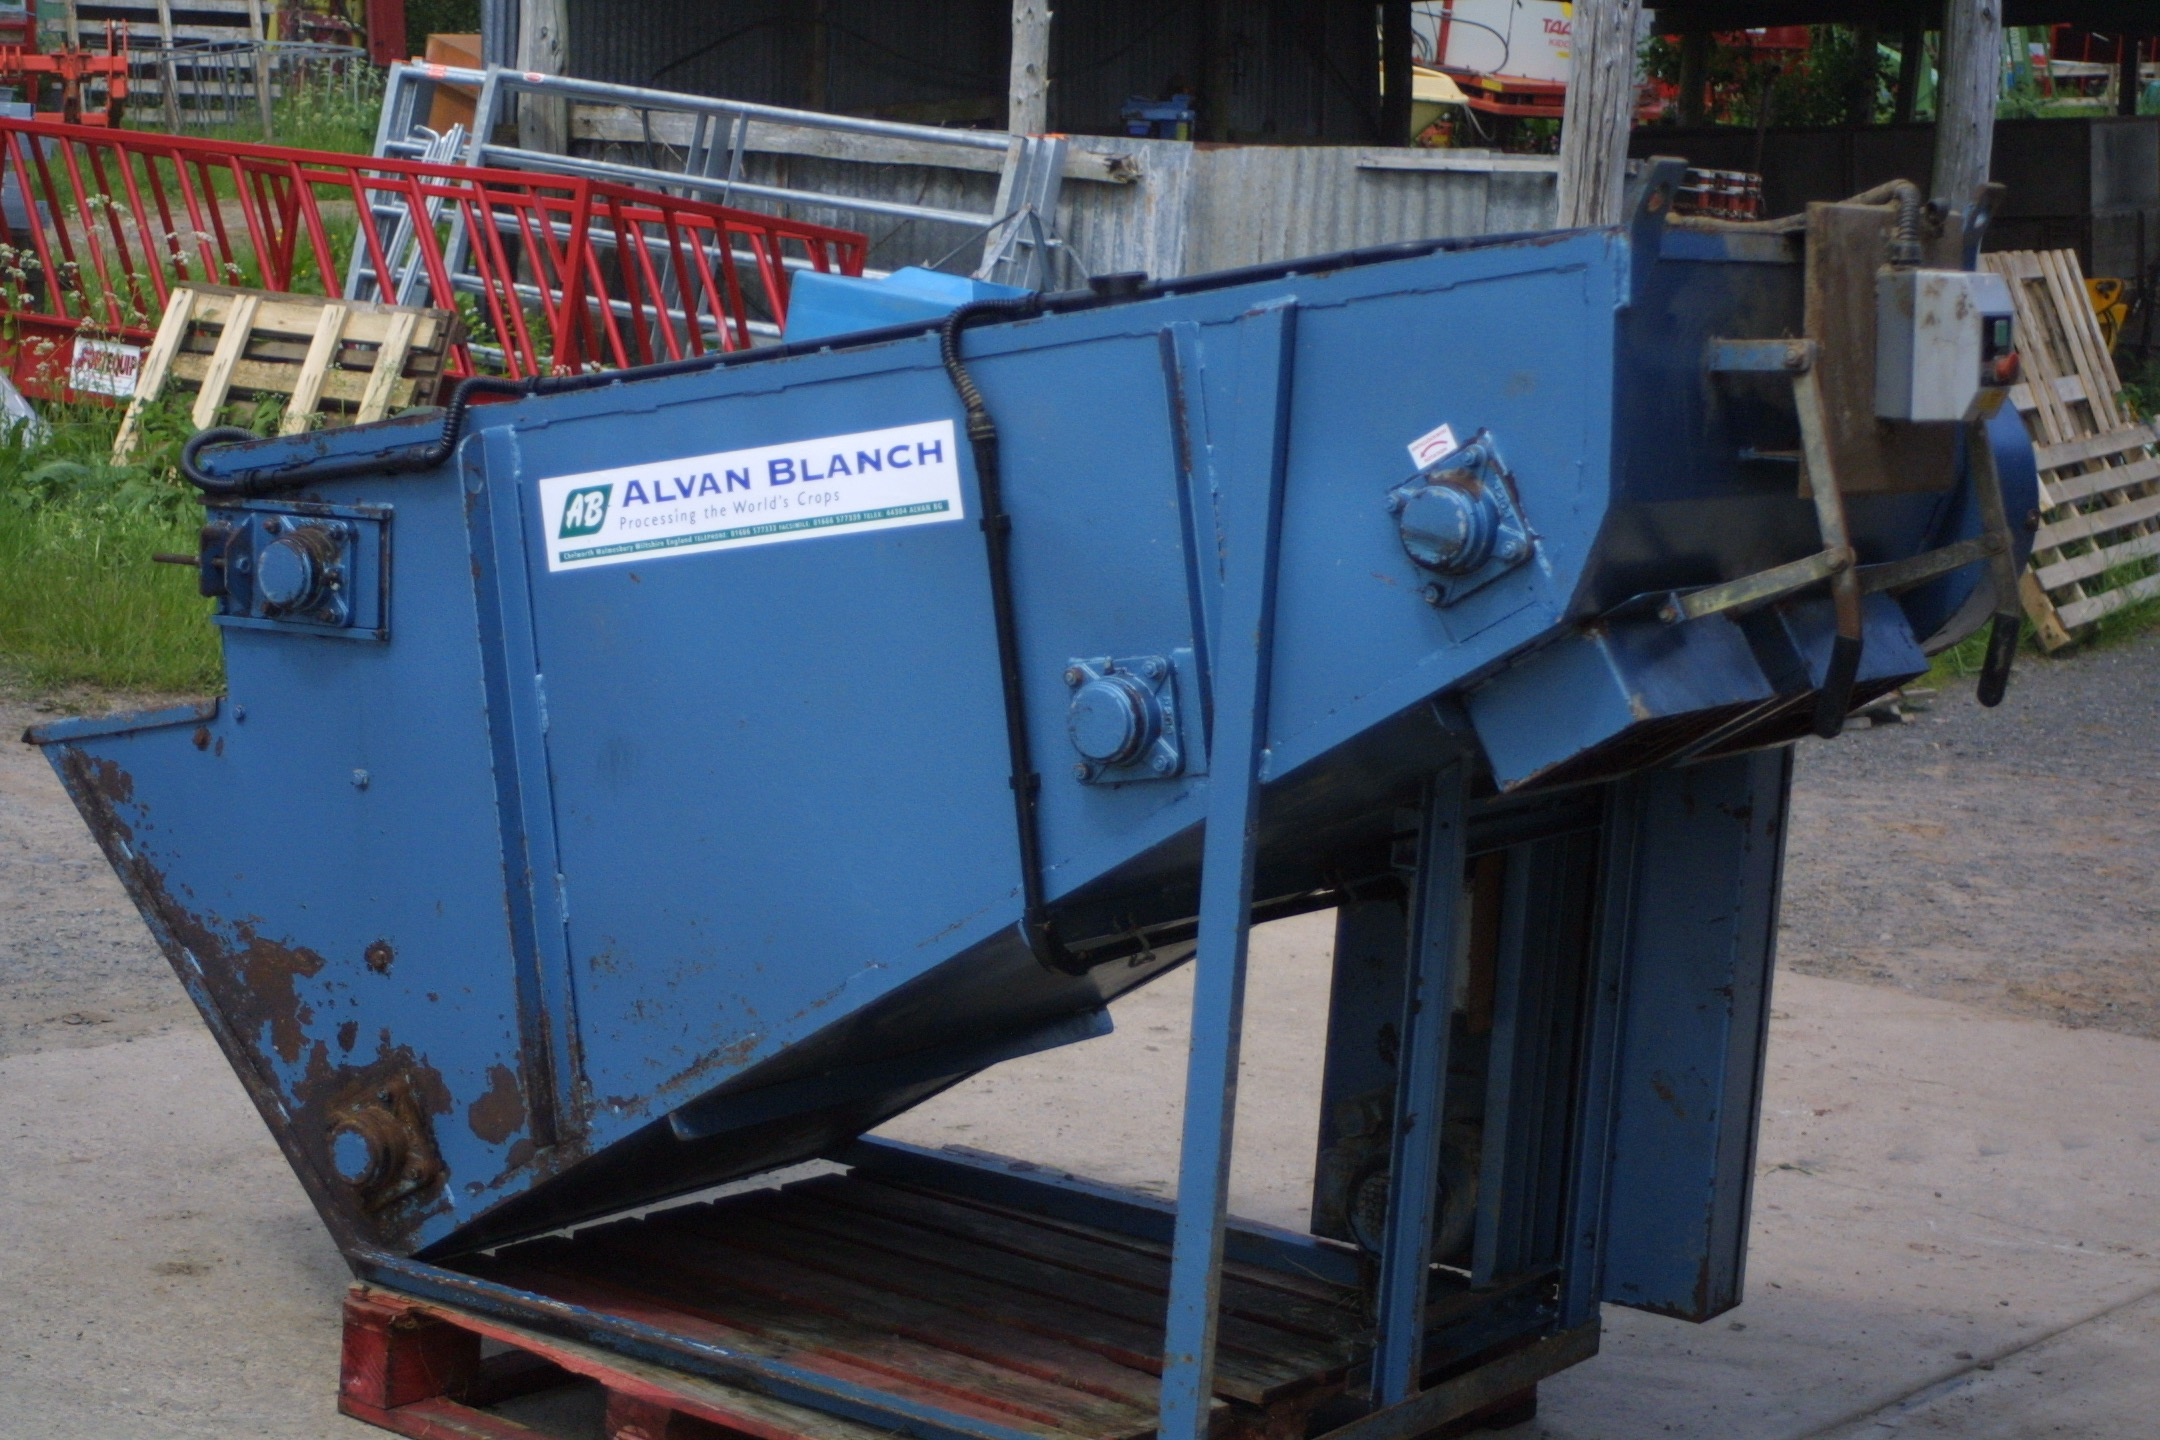 For Sale - Used Alvan Blanch Half-Tonne Meal Mixer Single-phase electrics c/w bagging off chute